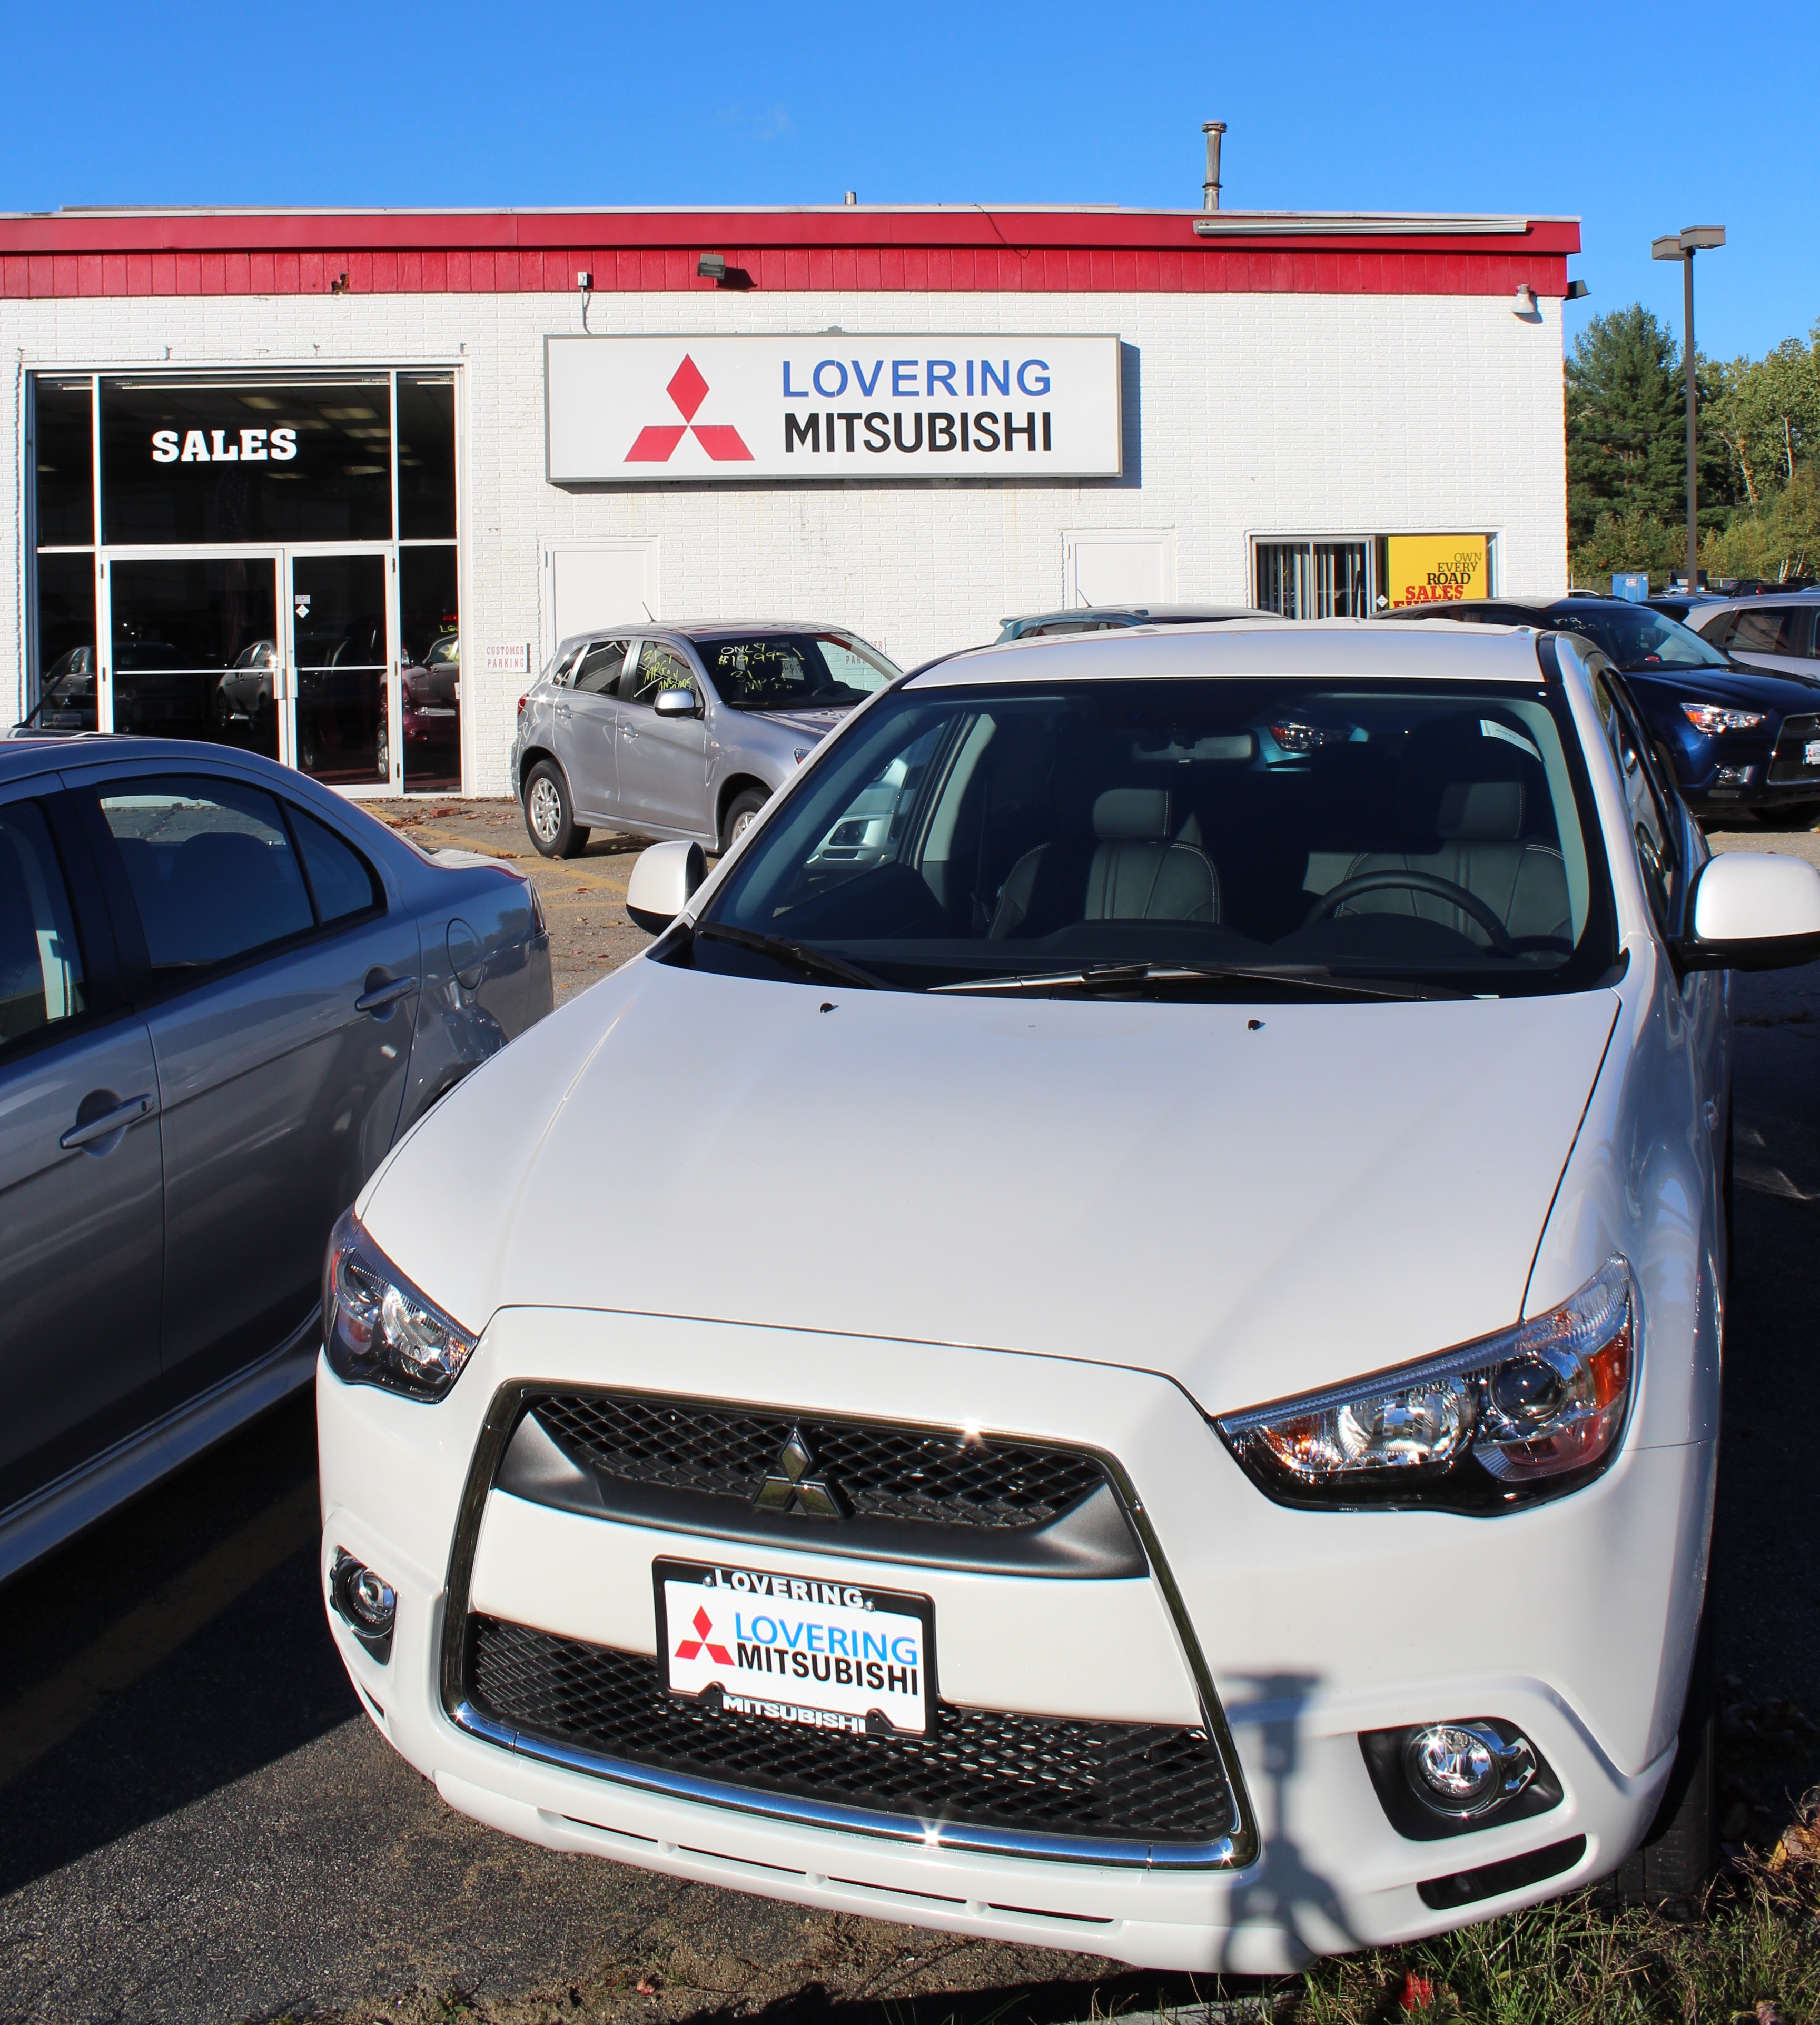 Lovering Mitsubishi in Concord, NH 03301